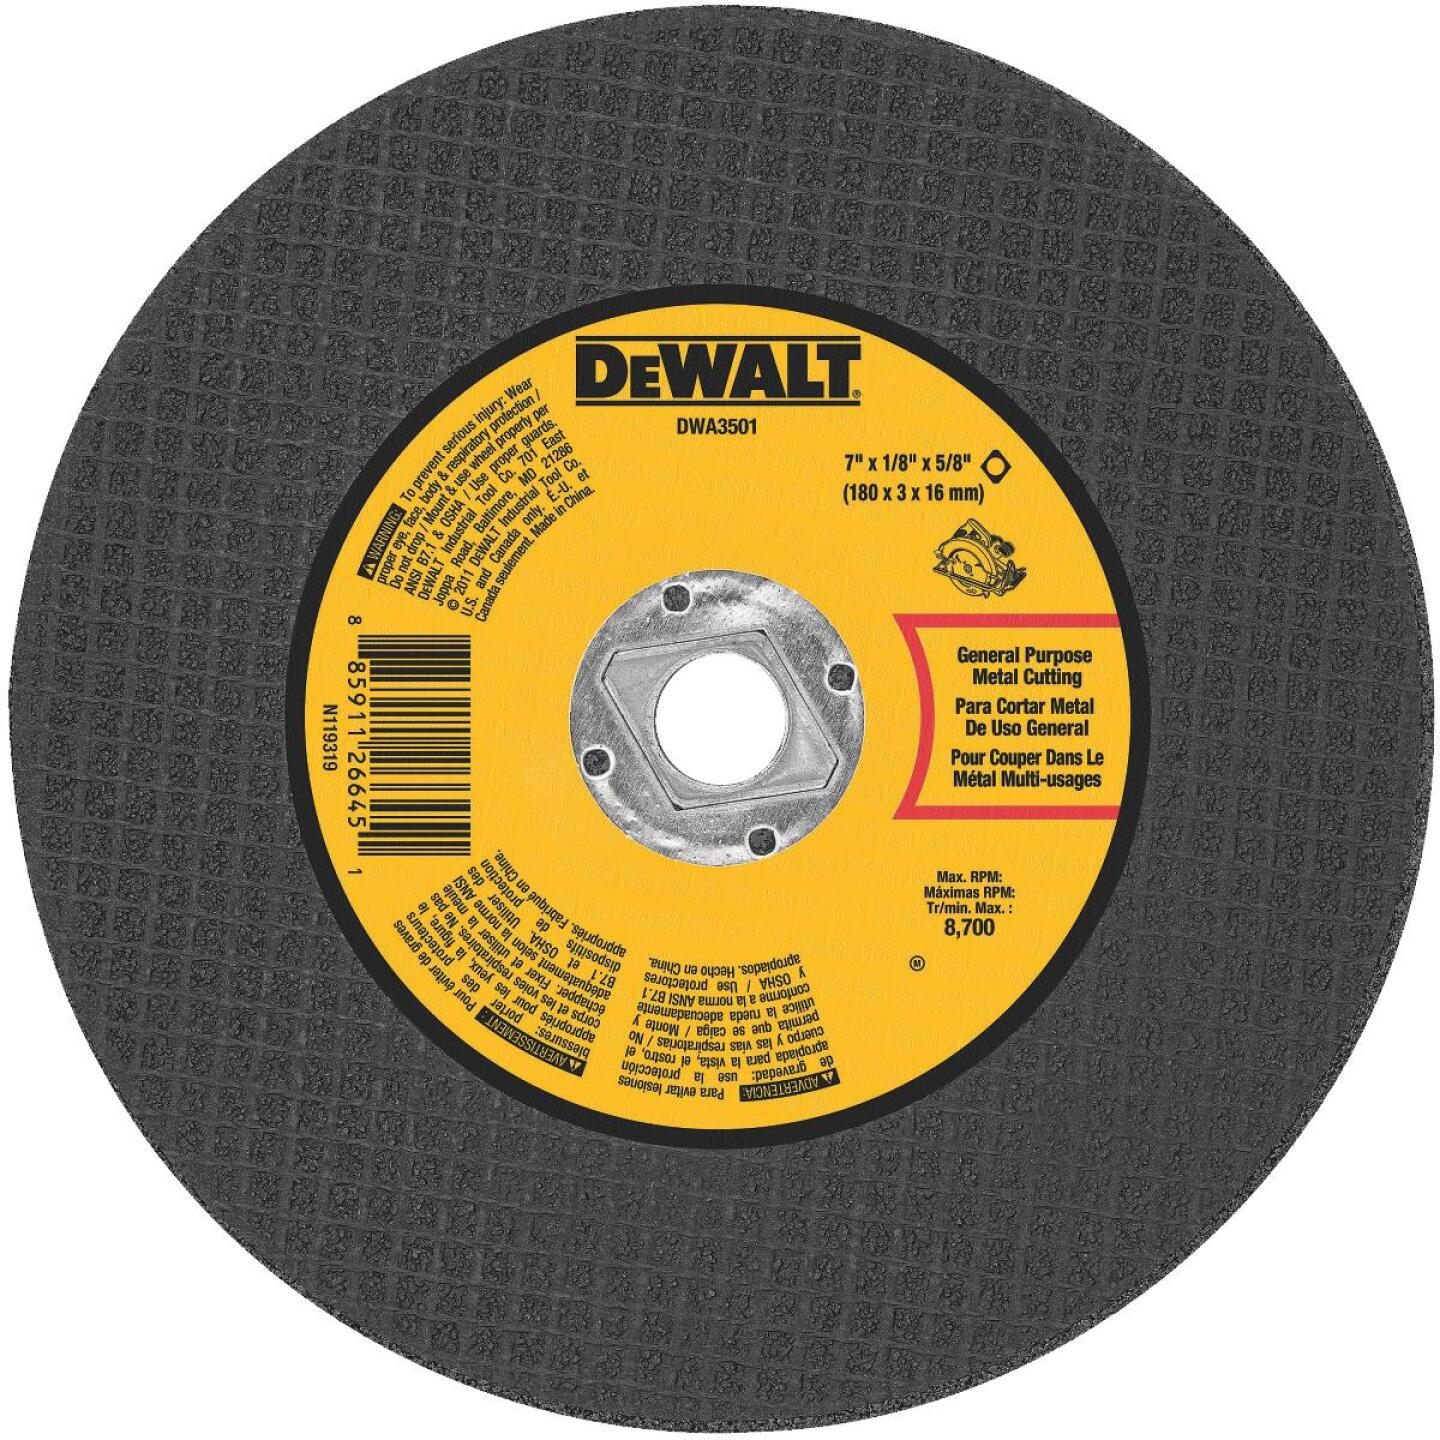 DeWalt Type 1 7 In. x 1/8 In. x 5/8 In. Metal Cut-Off Wheel Image 1